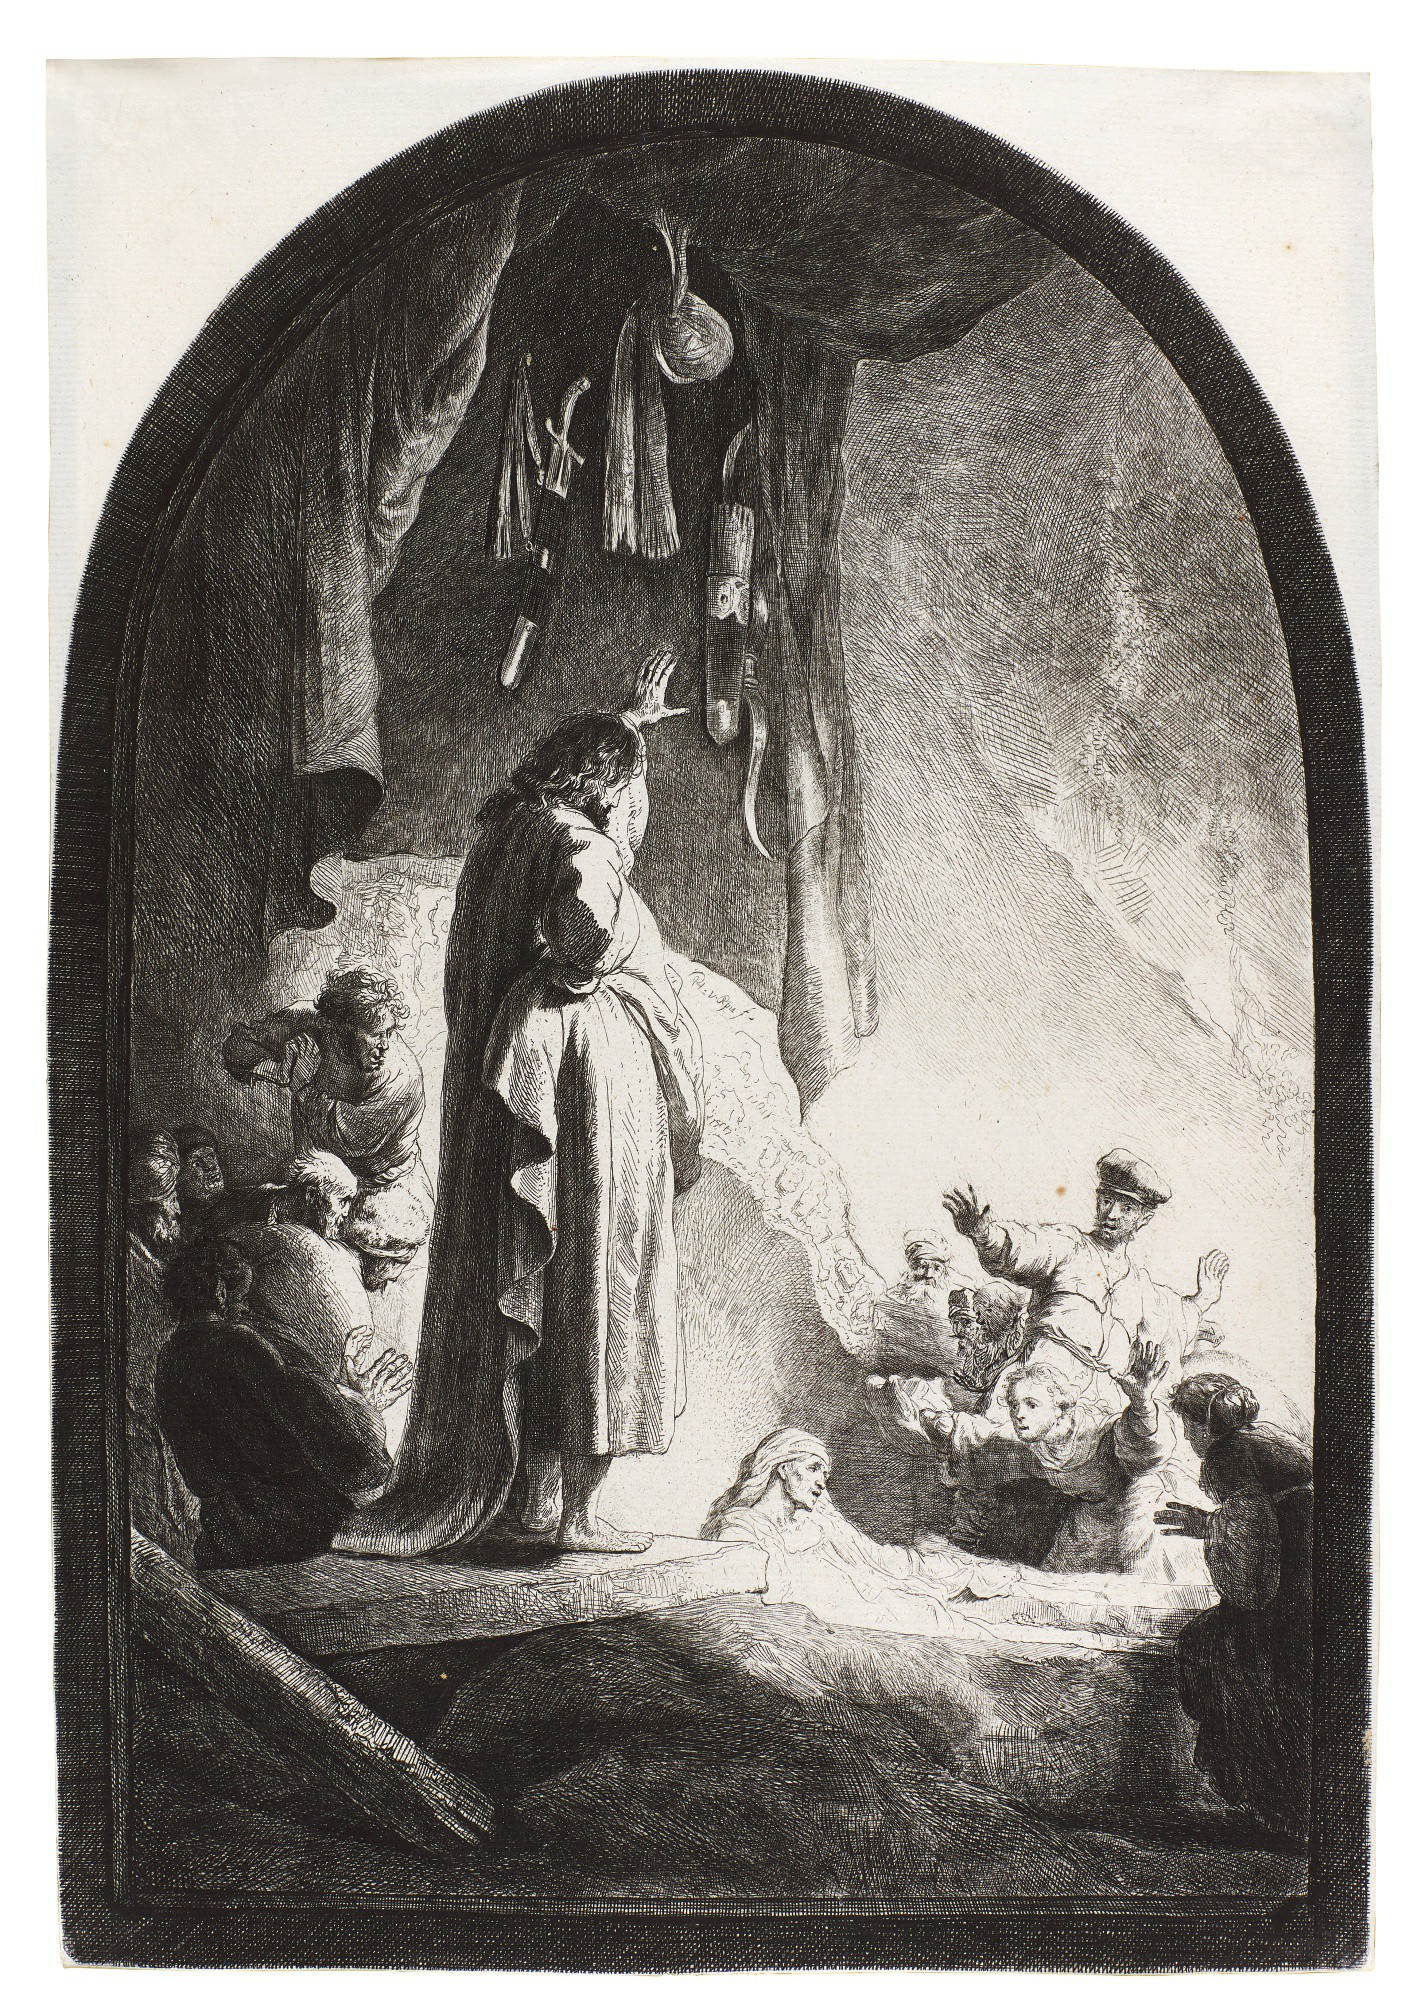 REMBRANDT HARMENSZ. VAN RIJN | THE RAISING OF LAZARUS: THE LARGER PLATE (B., HOLL. 73; NEW HOLL. 113; H. 96)